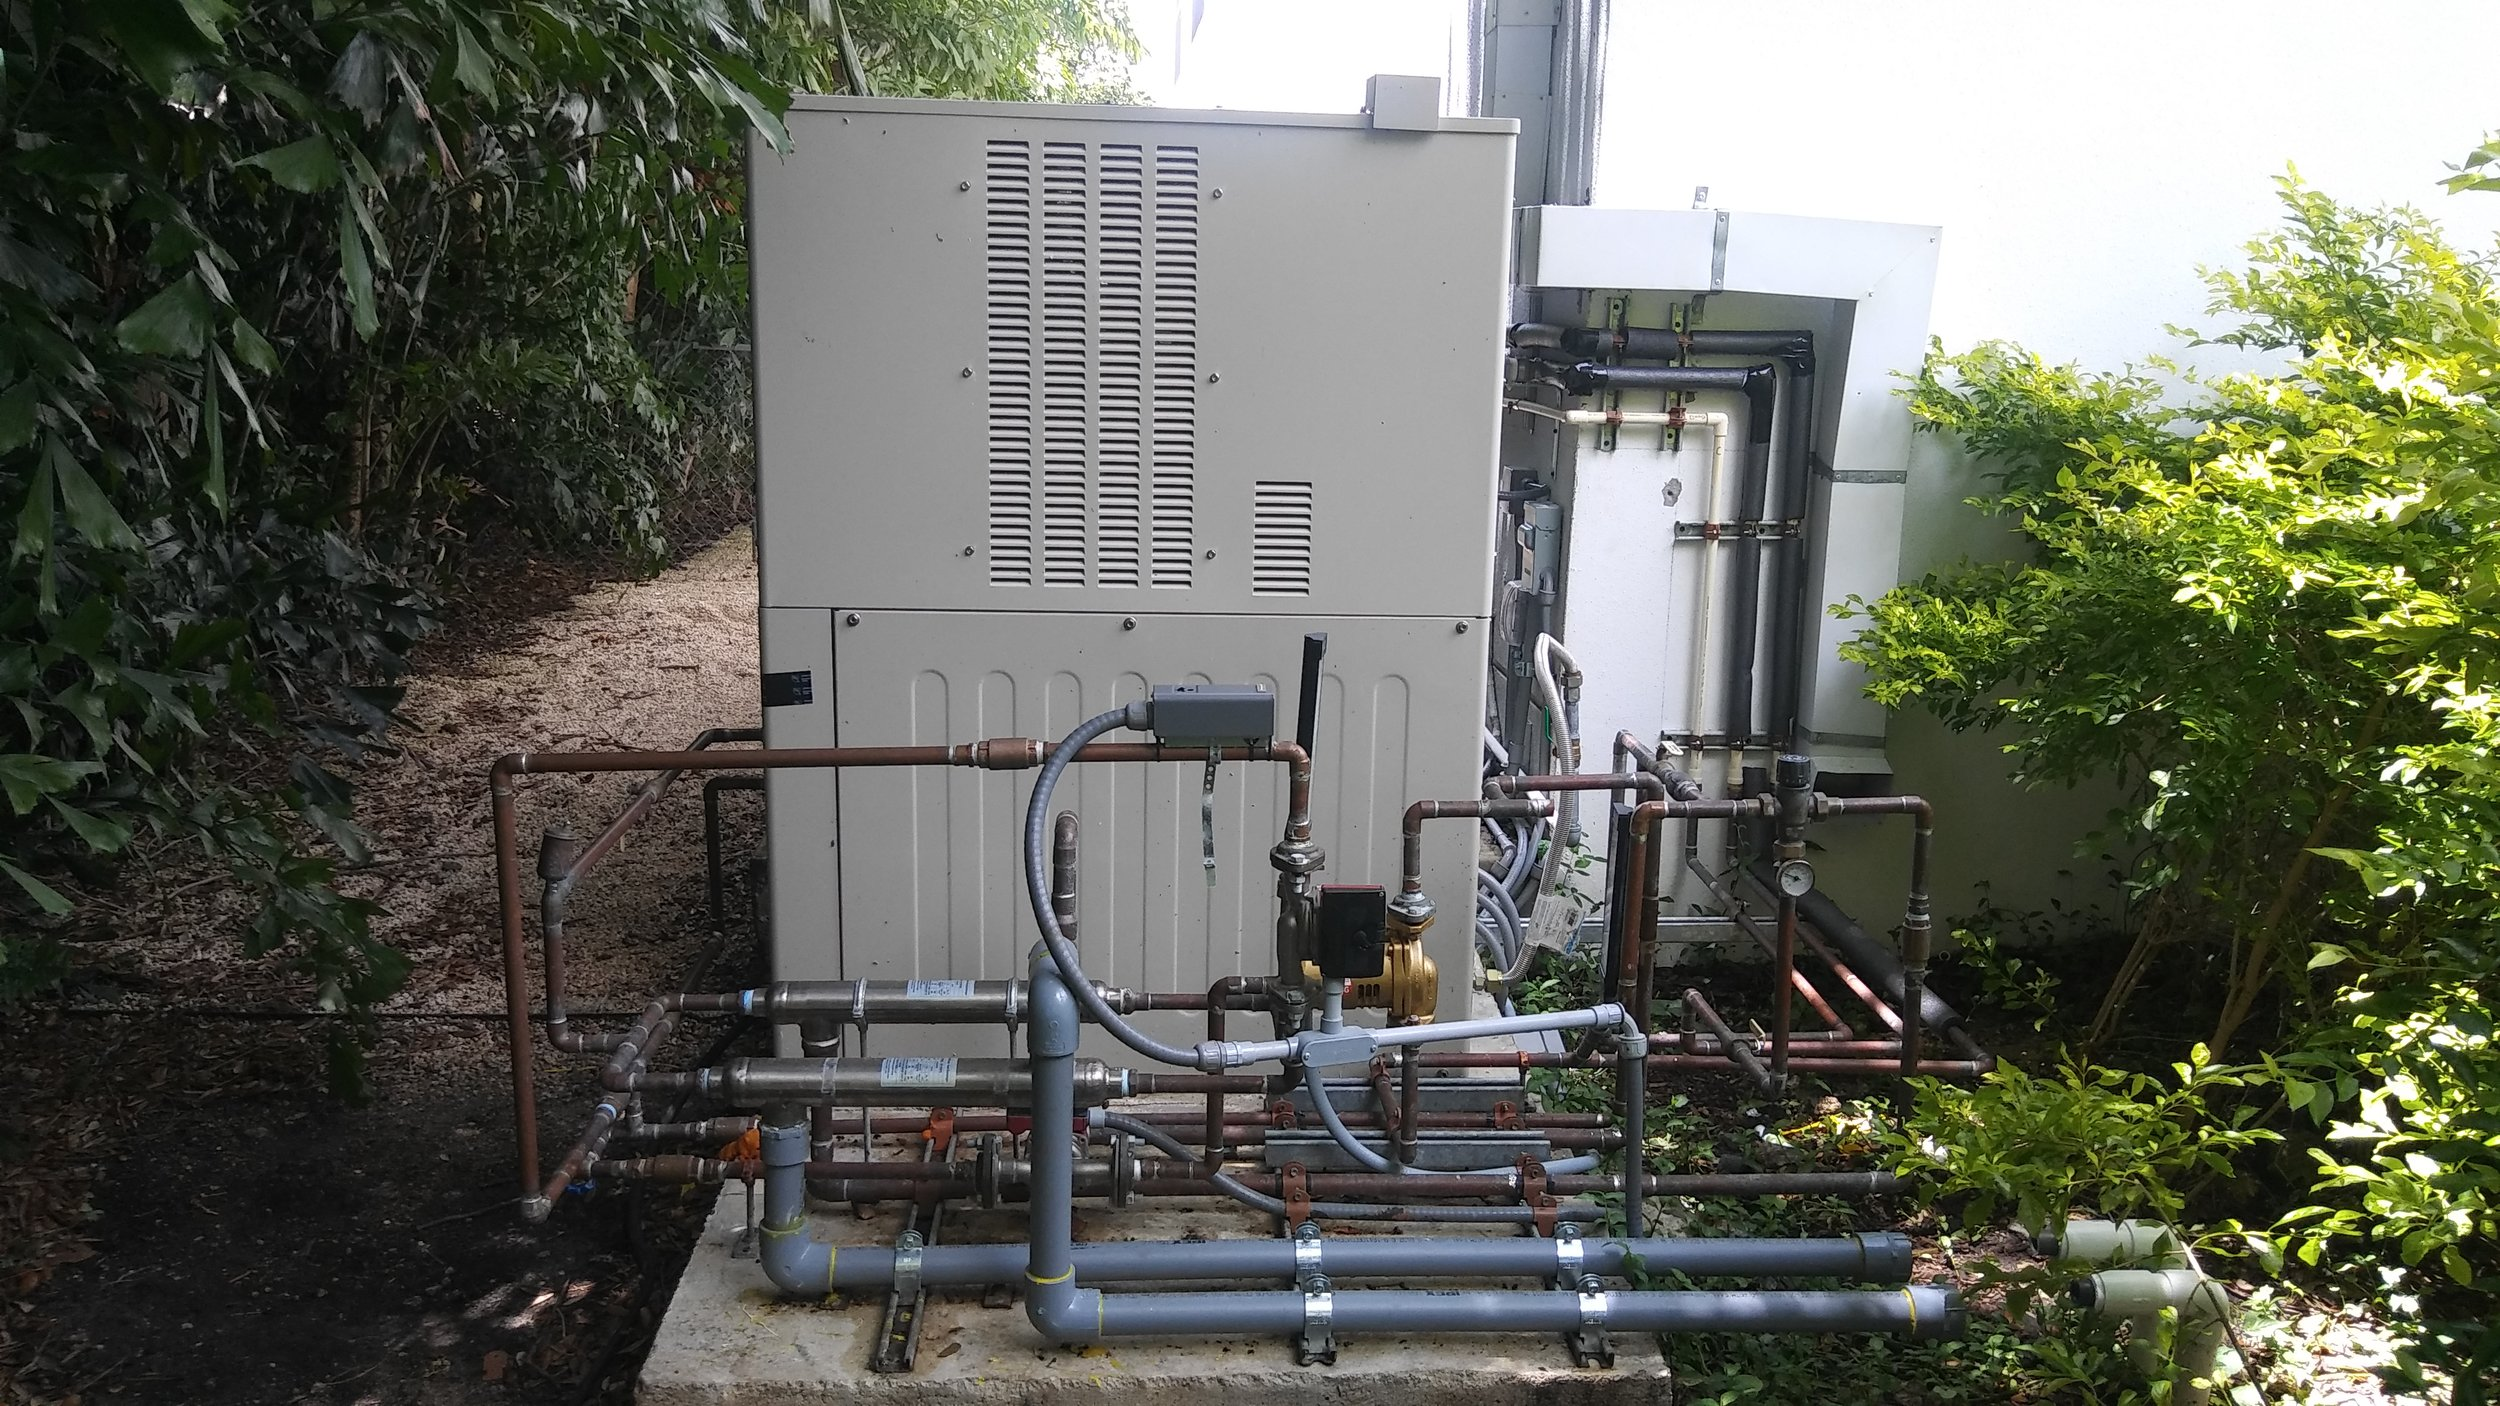 South Miami - Residential - Yanmar 5KW CHP System (Combined Heat and Power)